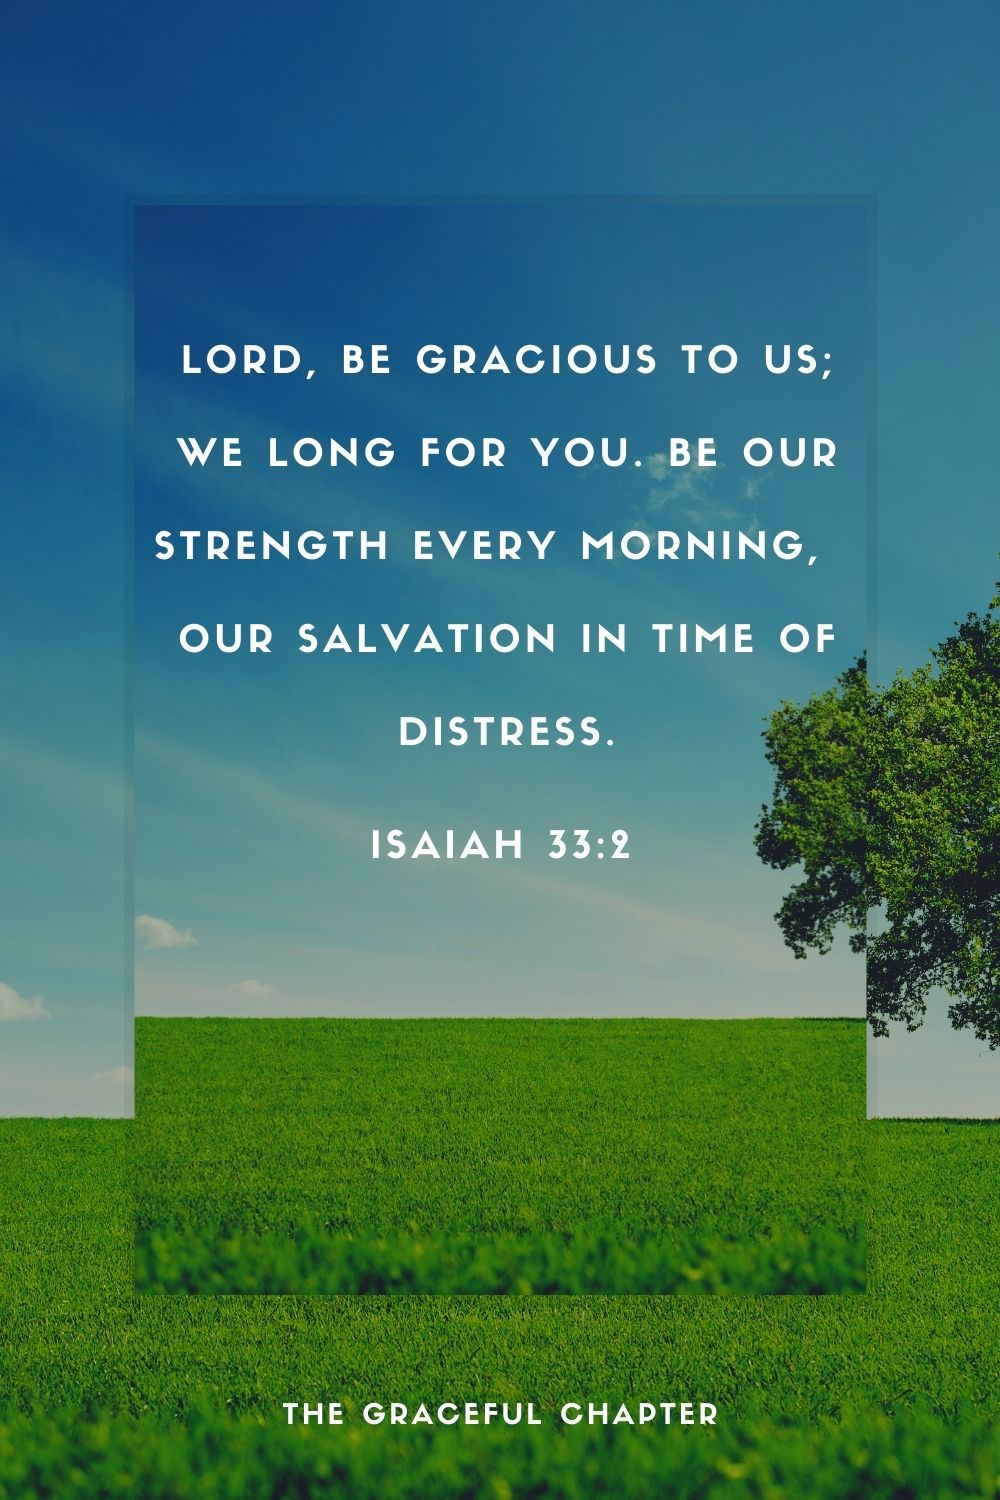 Lord, be gracious to us; we long for you.  Be our strength every morning,  our salvation in time of distress. -Isaiah 33:2